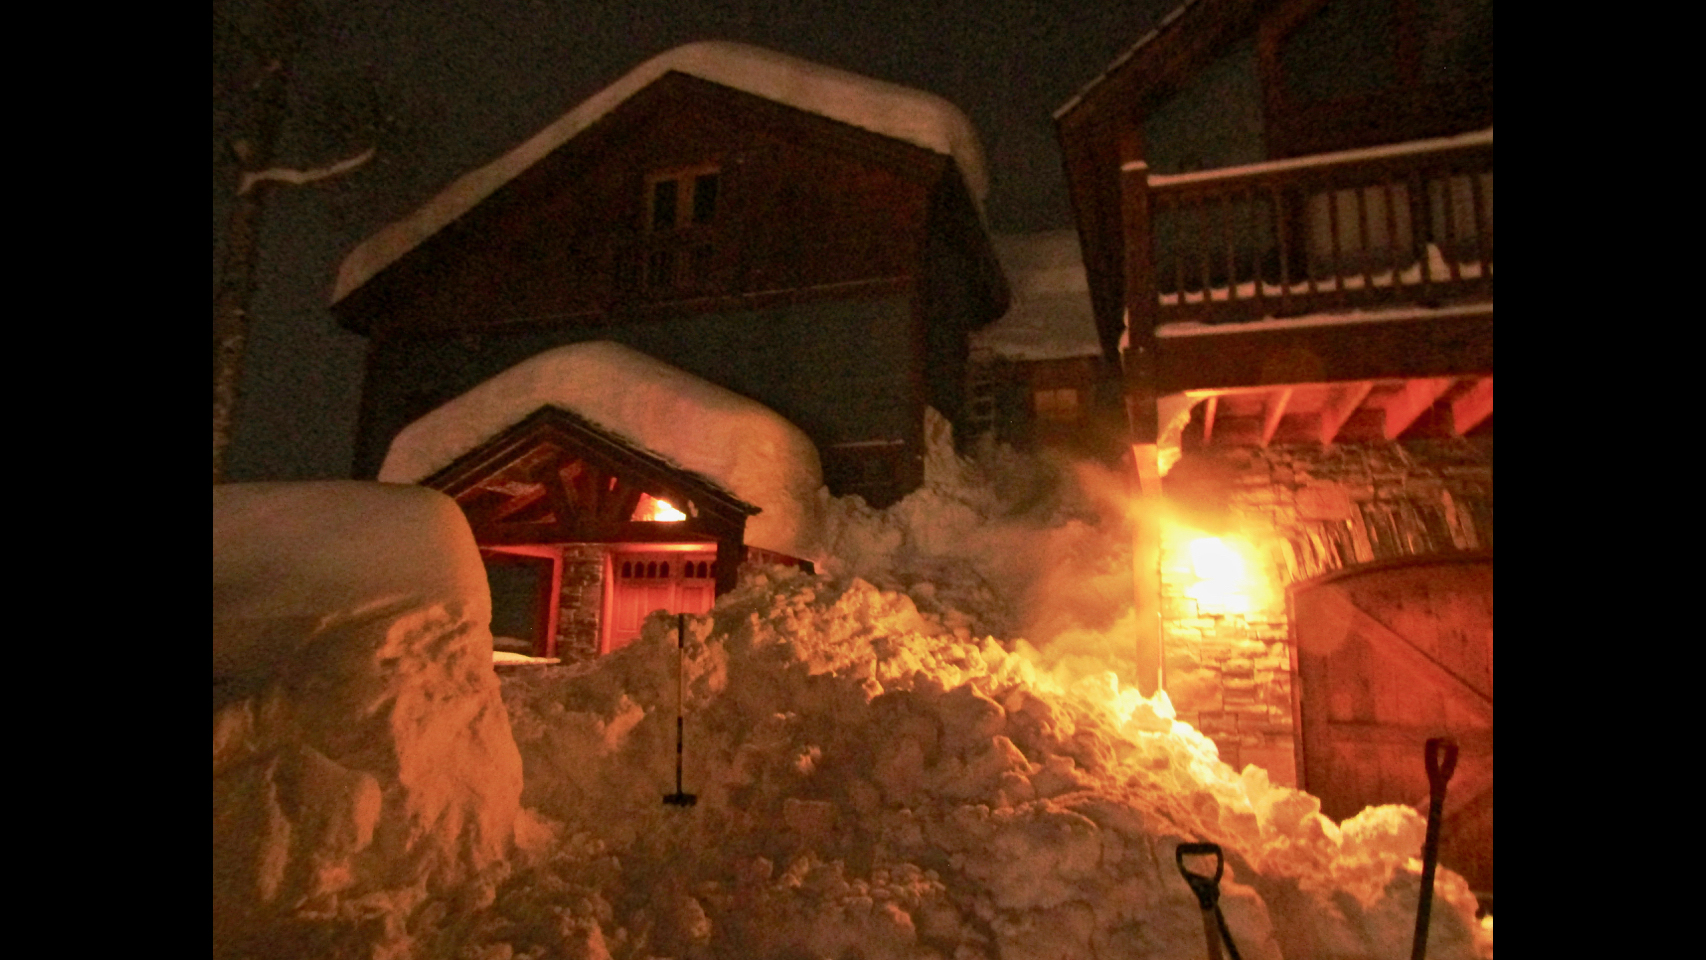 This roof avalanche caught and buried a person on March 8, 2019, in Mount Crested Butte. The avalanche came off the roof in the upper right, and the p